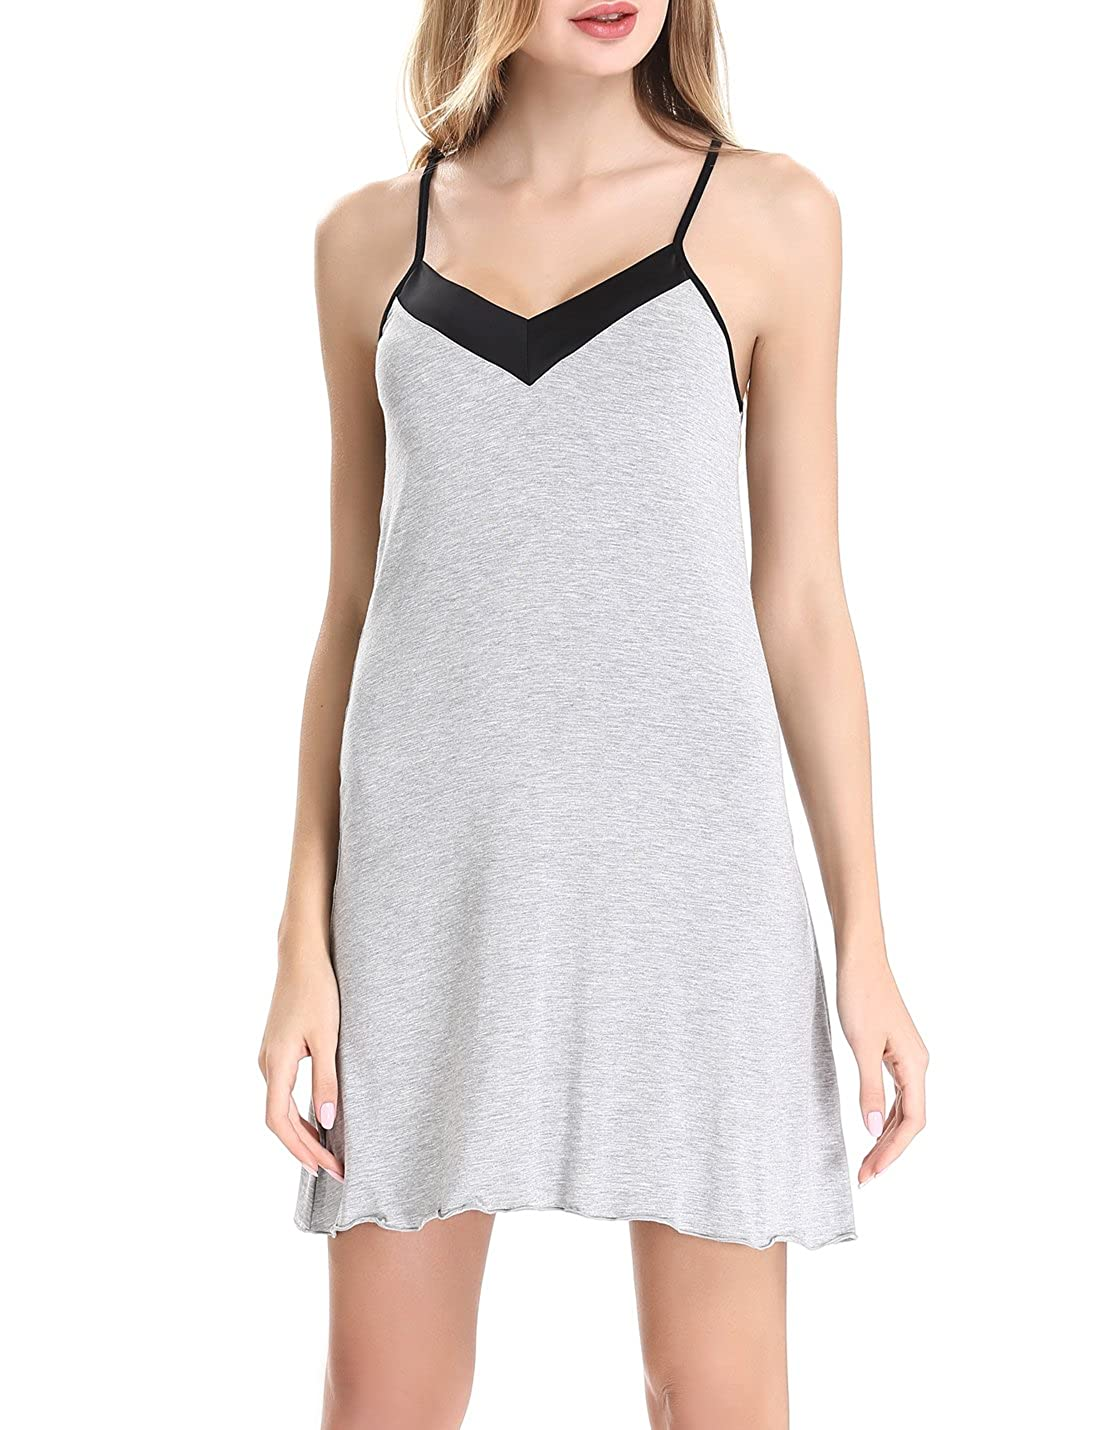 Womens cotton Chemise Sleepwear Slip Nightgown Sling Dress by NORA TWIPS(XS-XL) *OY013